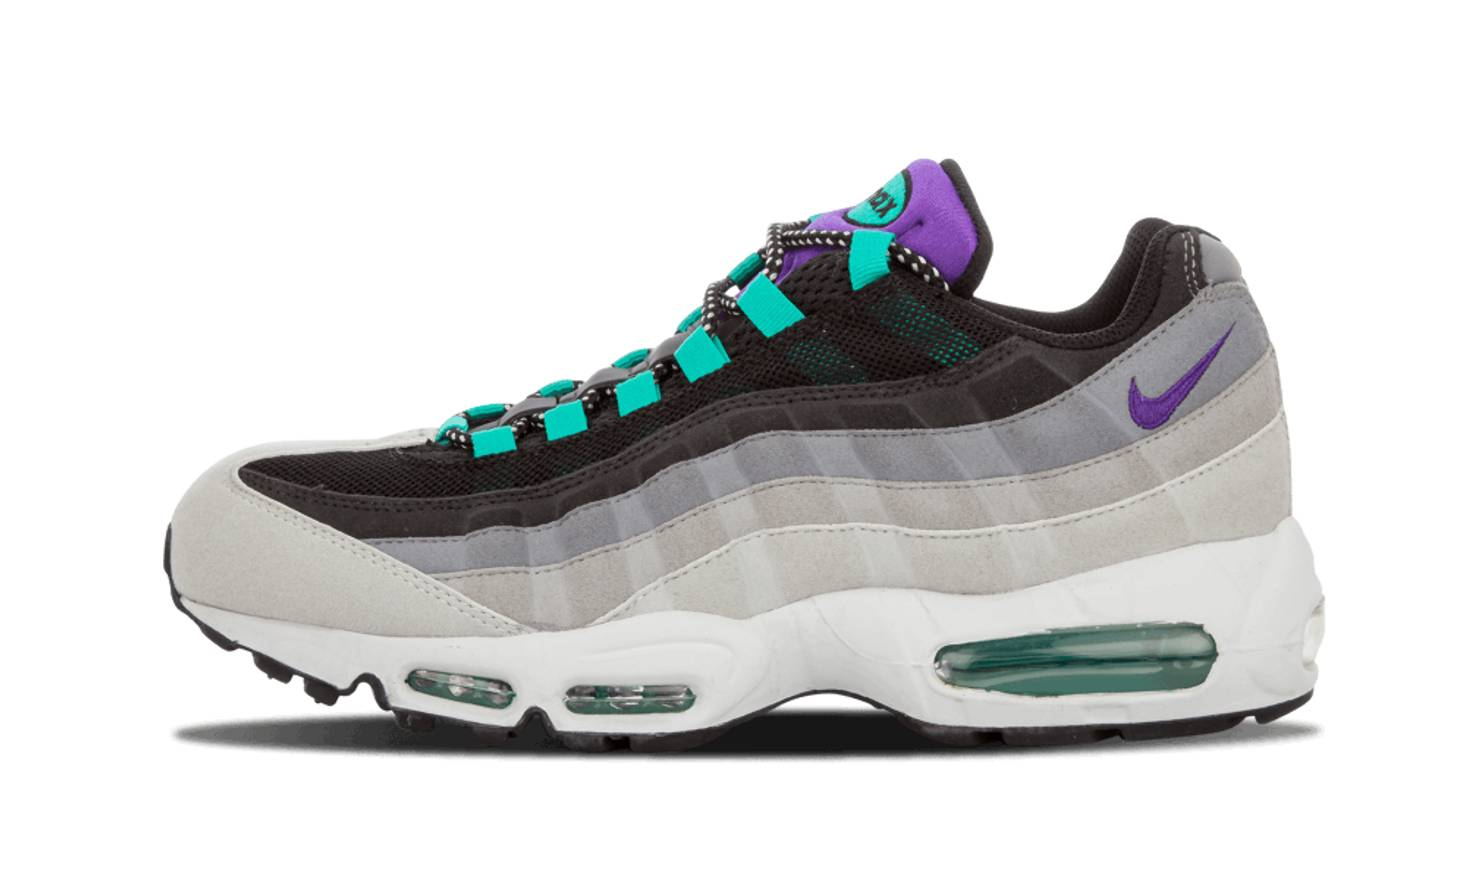 sale retailer 411cd a804f ... purple trainers sale 8f0c4 d305b; spain nike nike air max 95 grape 2010  edition size us 10 eu 43 2 291f5